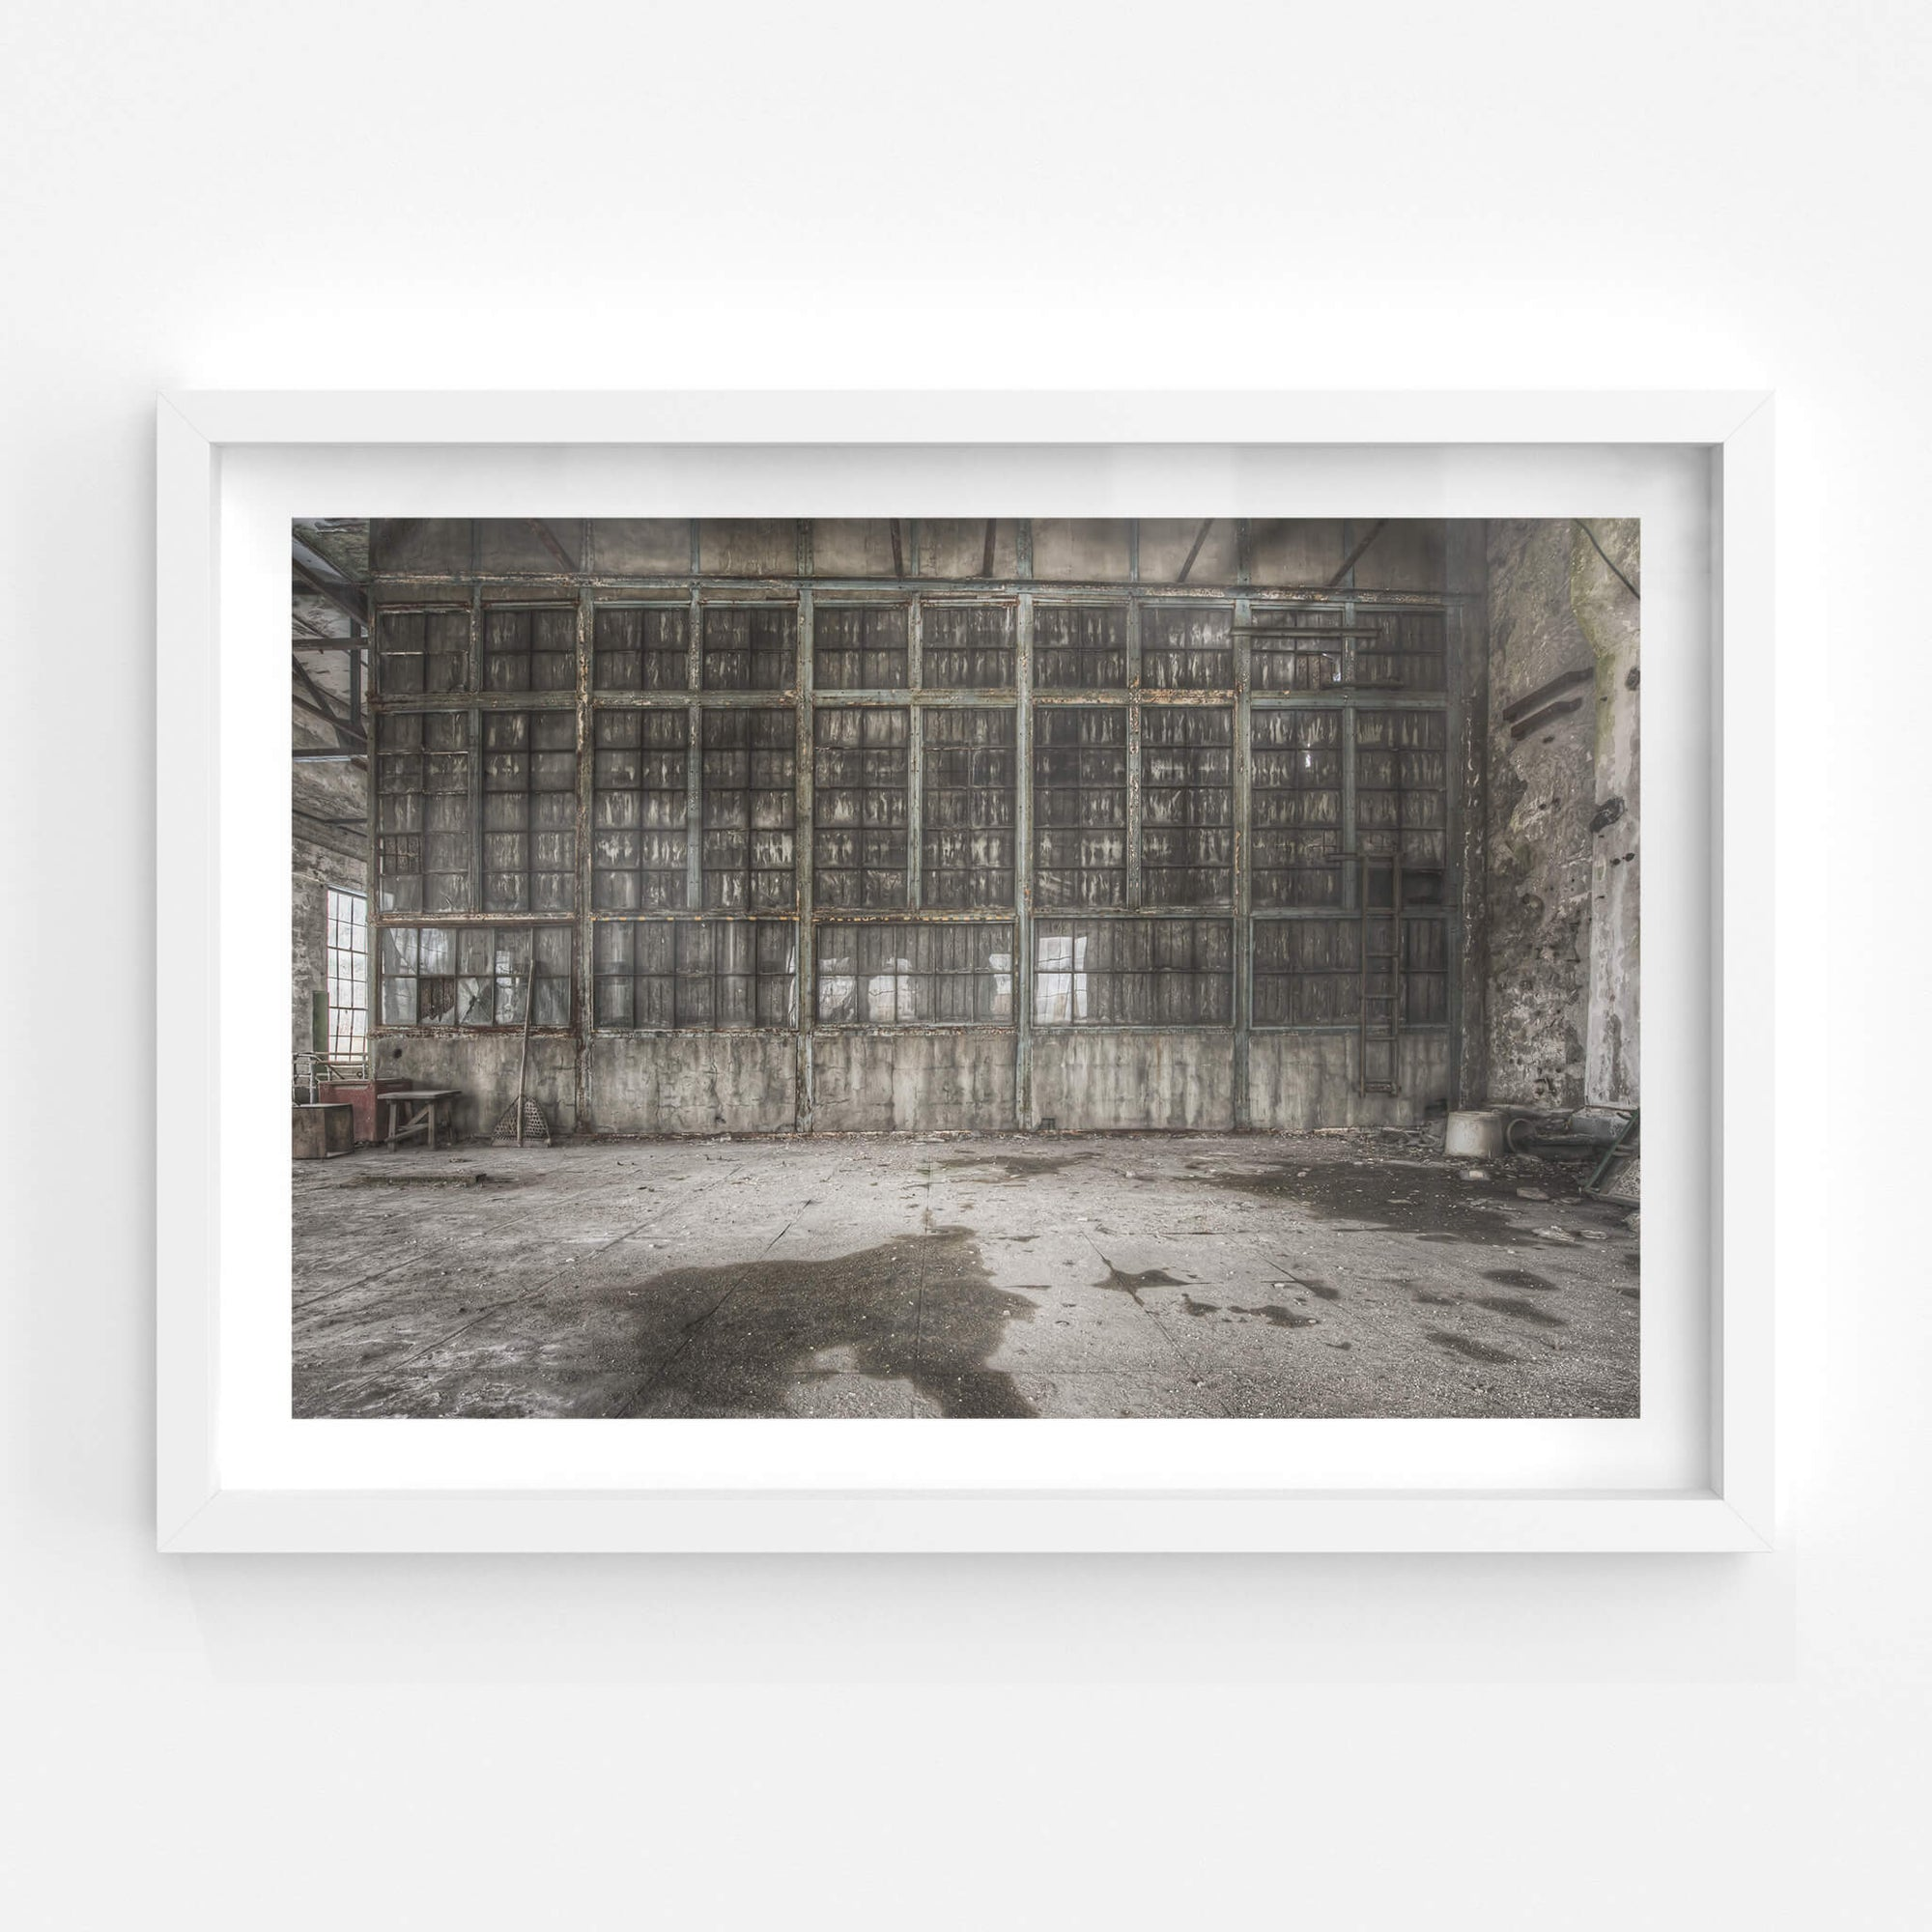 Control Room Window | Shimizusawa Thermal Power Plant Fine Art Print - Lost Collective Shop